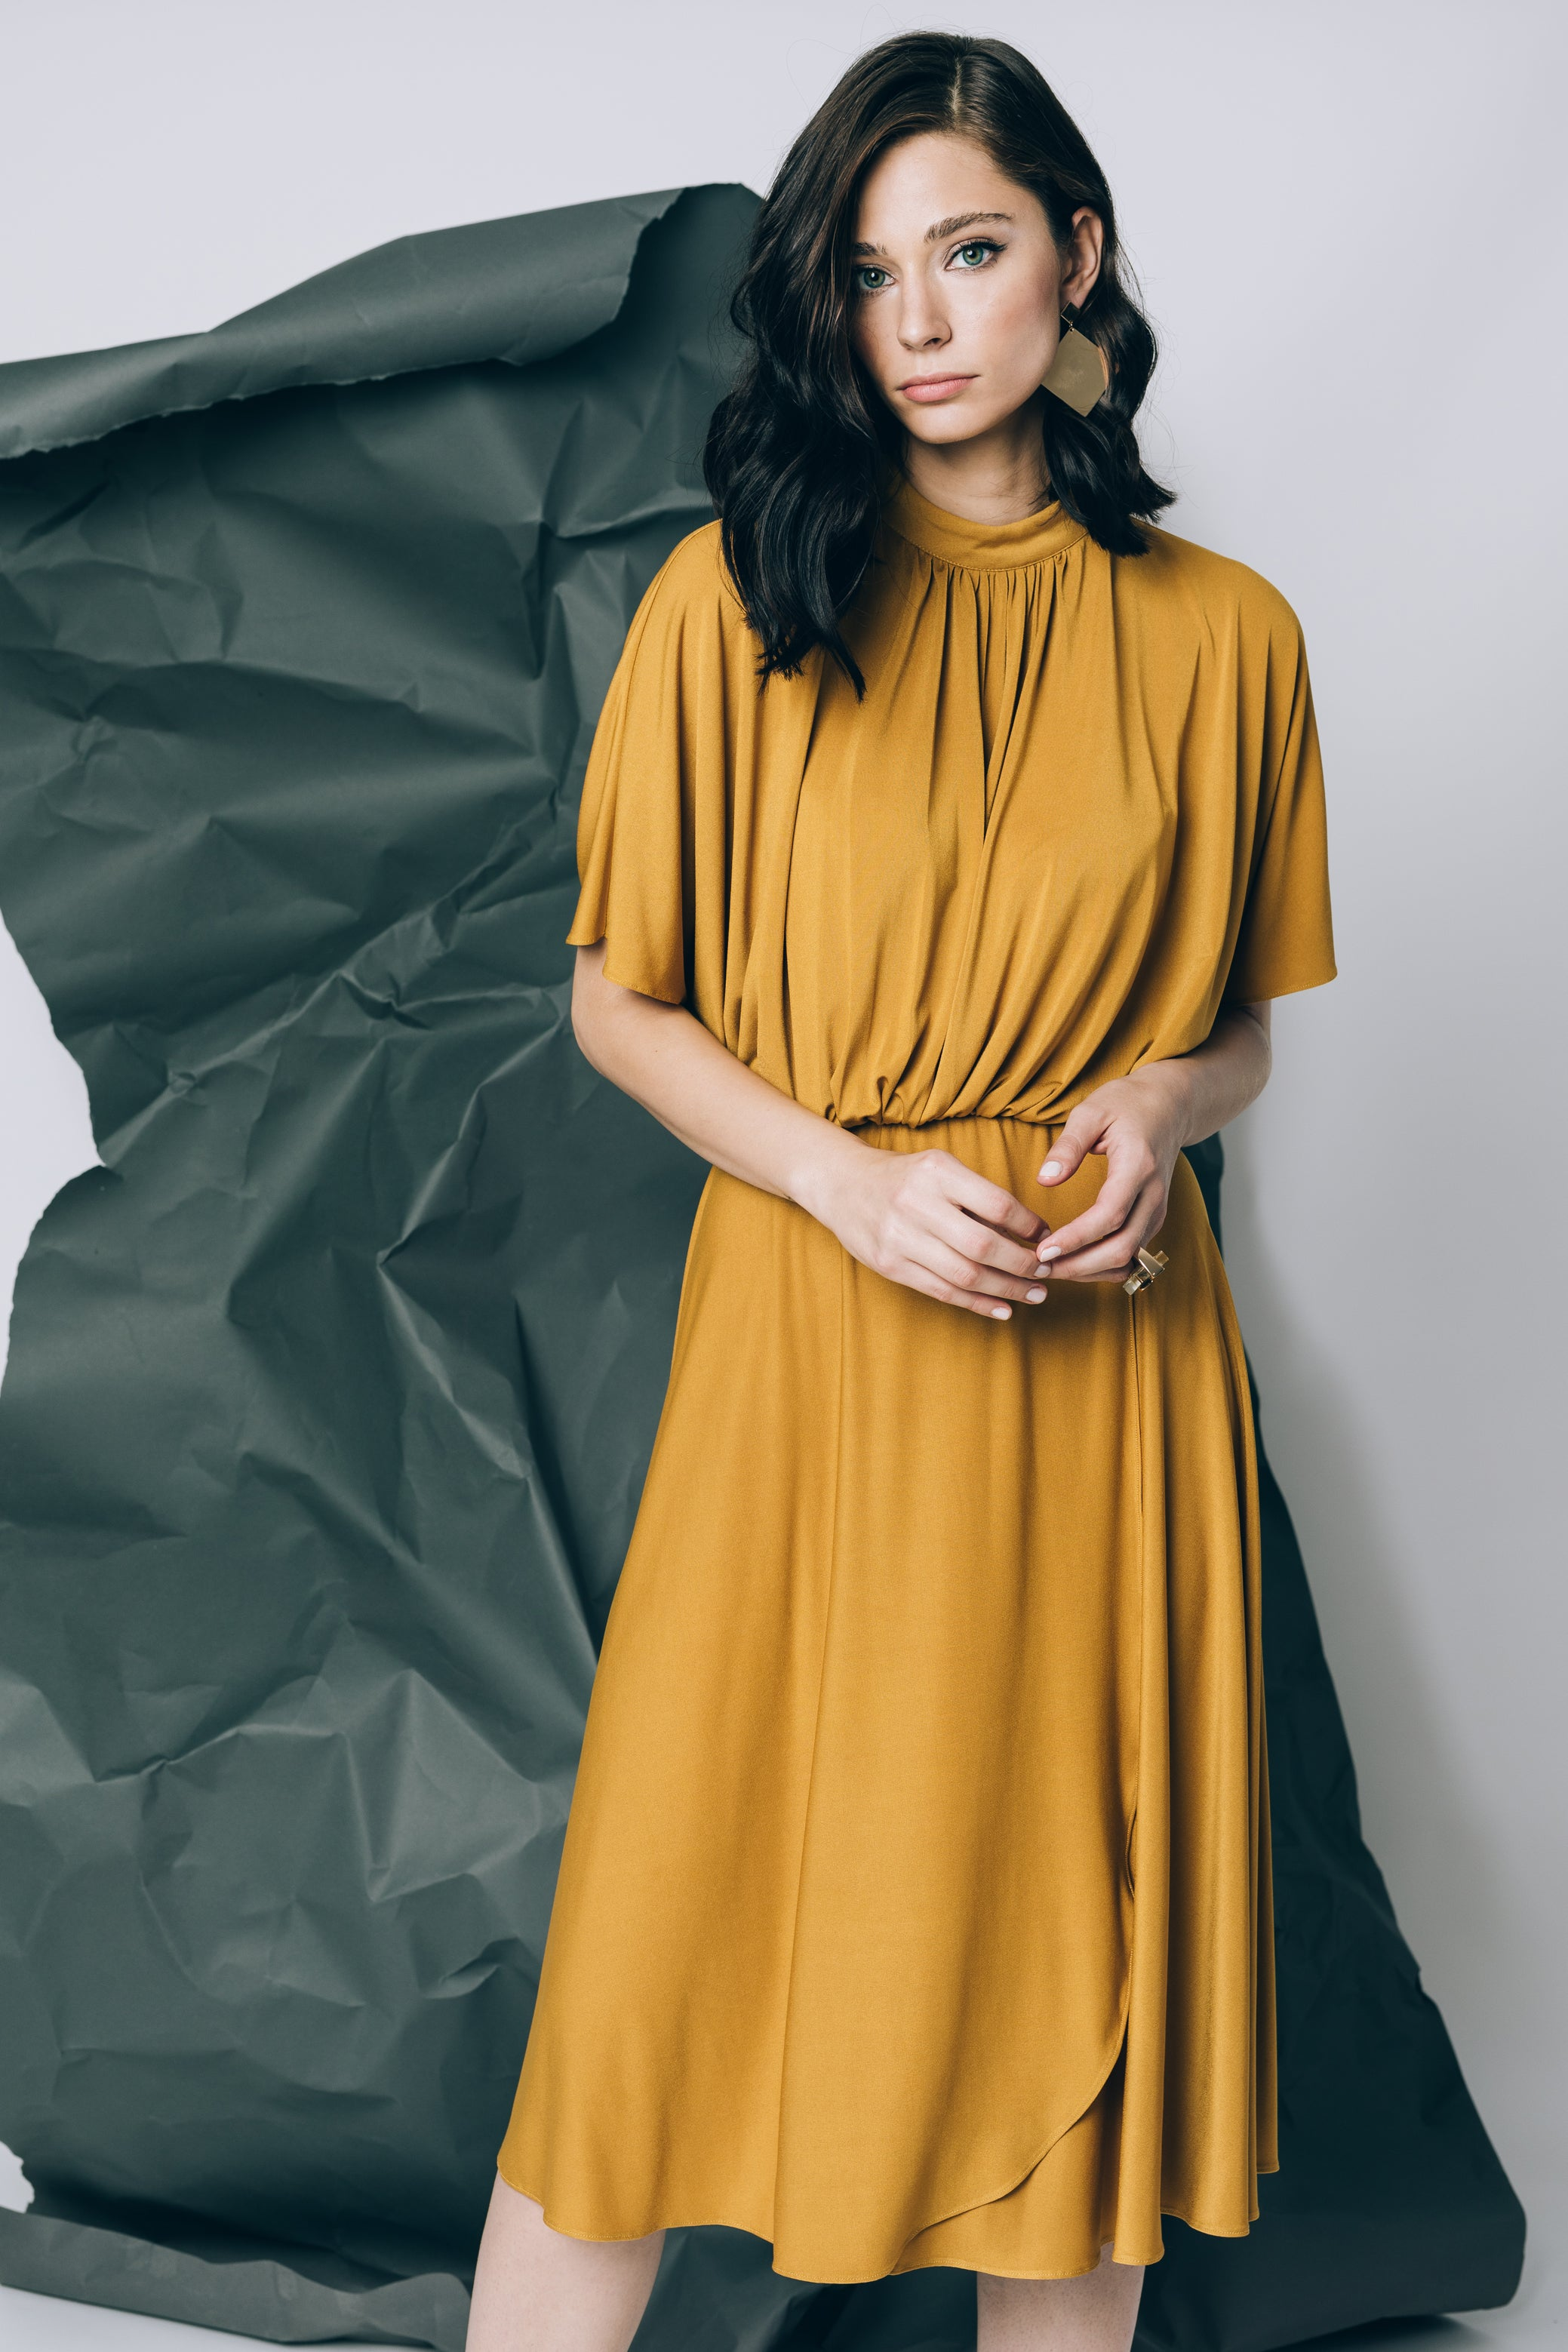 Midi dress in mustard yellow